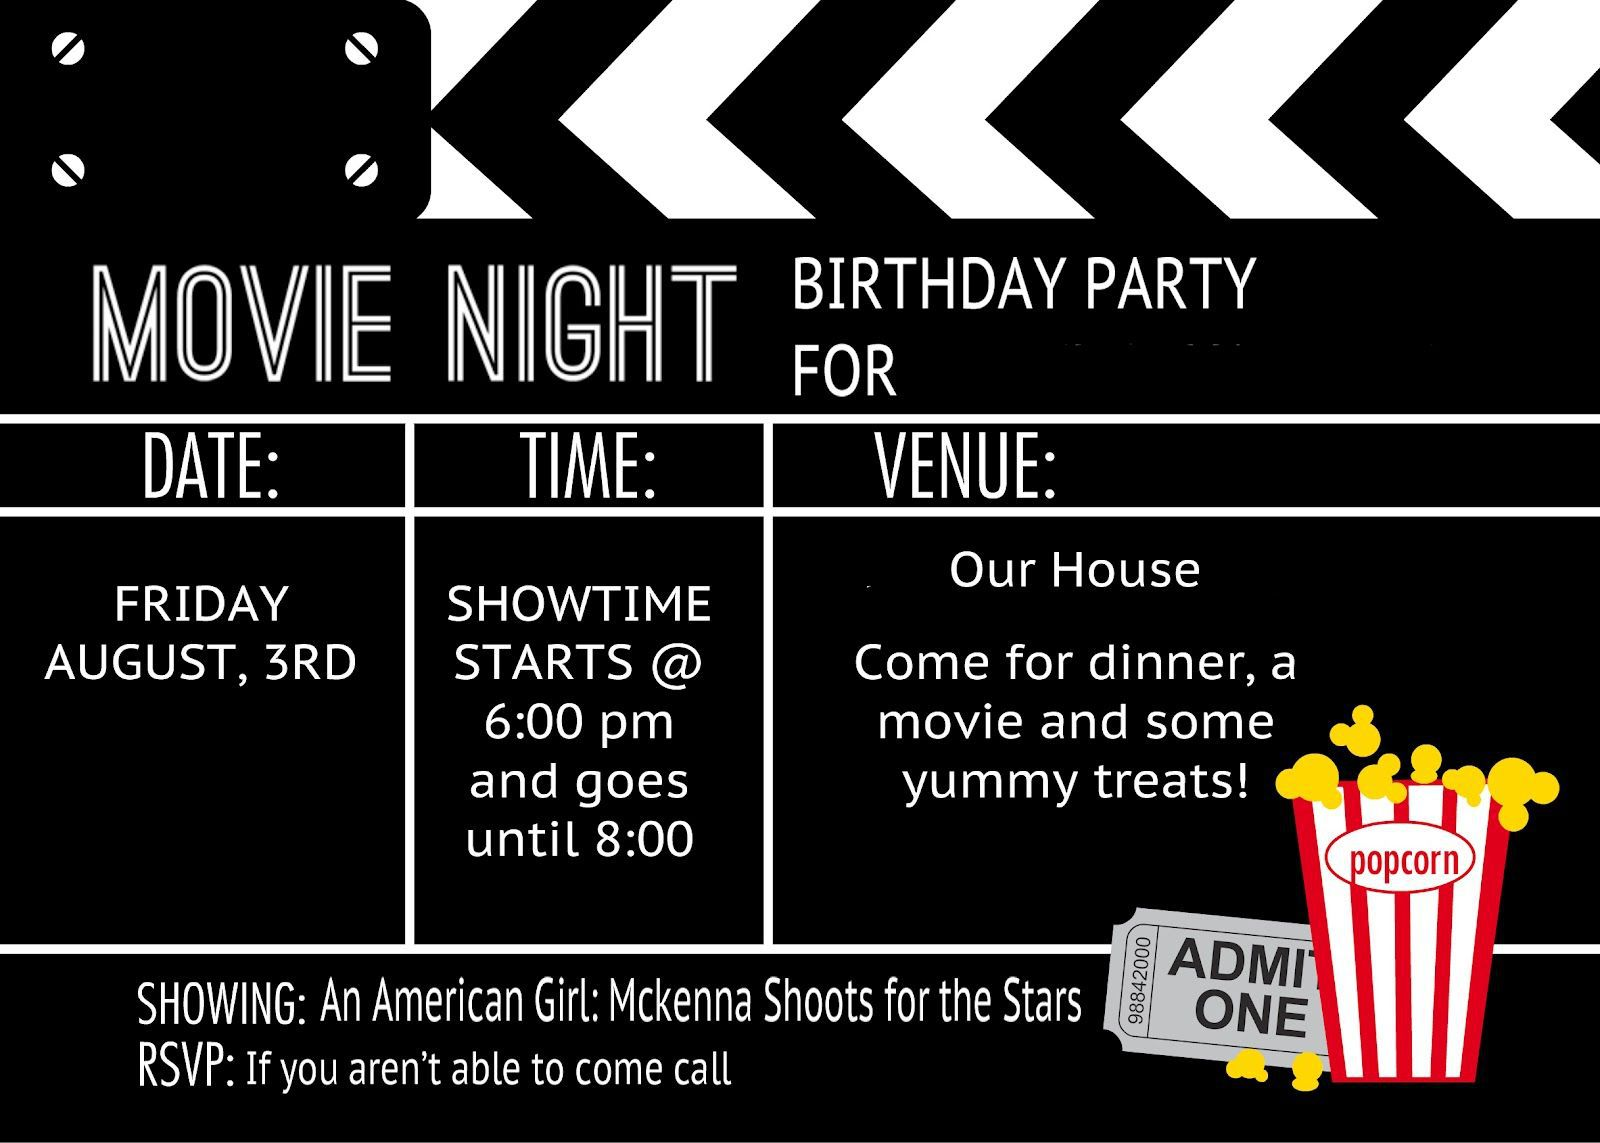 006 Impressive Free Printable Movie Ticket Birthday Party Invitation Picture Full